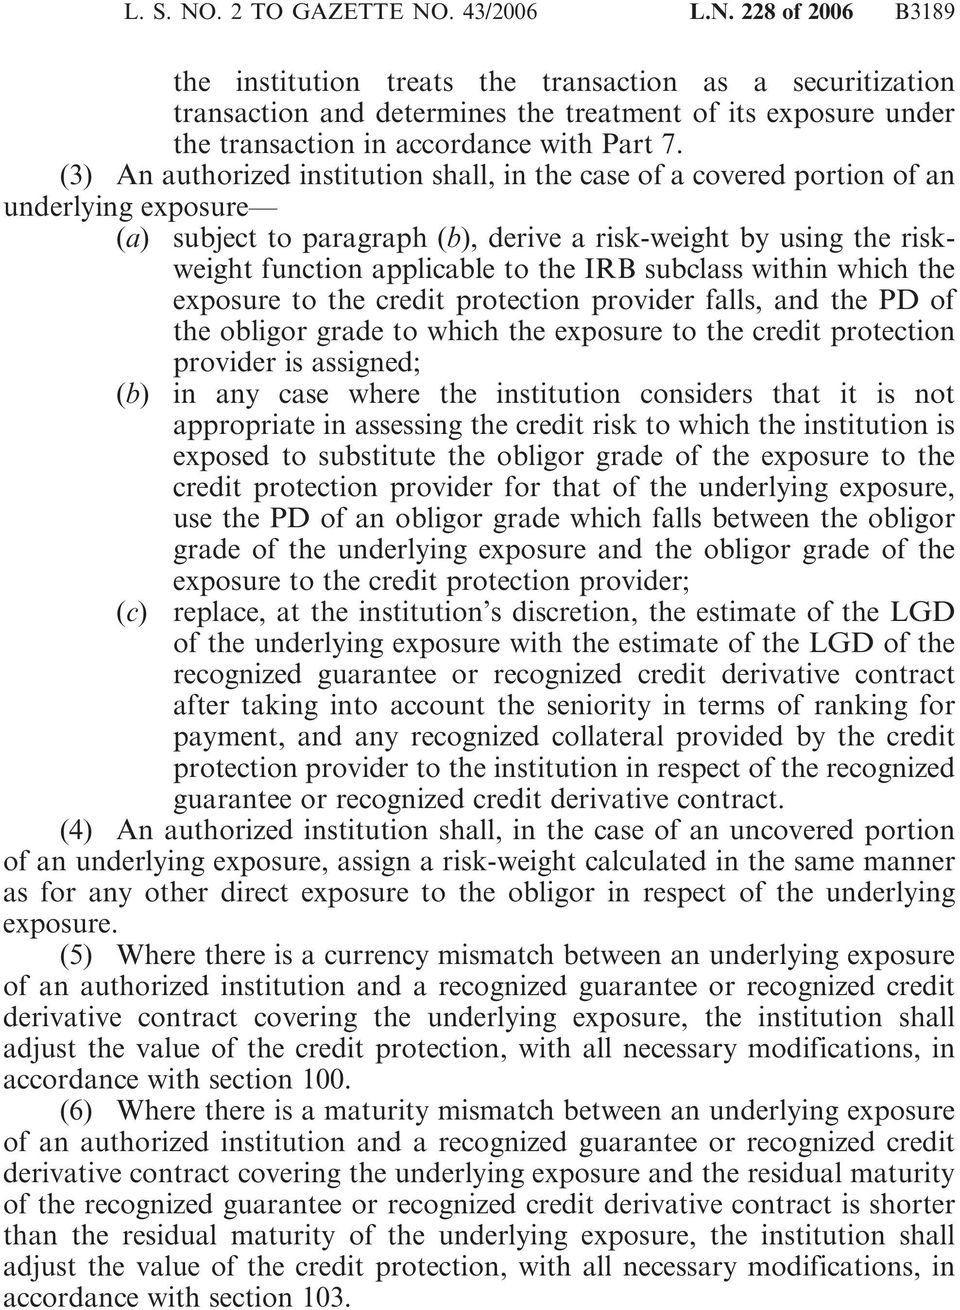 subclass within which the exposure to the credit protection provider falls, and the PD of the obligor grade to which the exposure to the credit protection provider is assigned; in any case where the